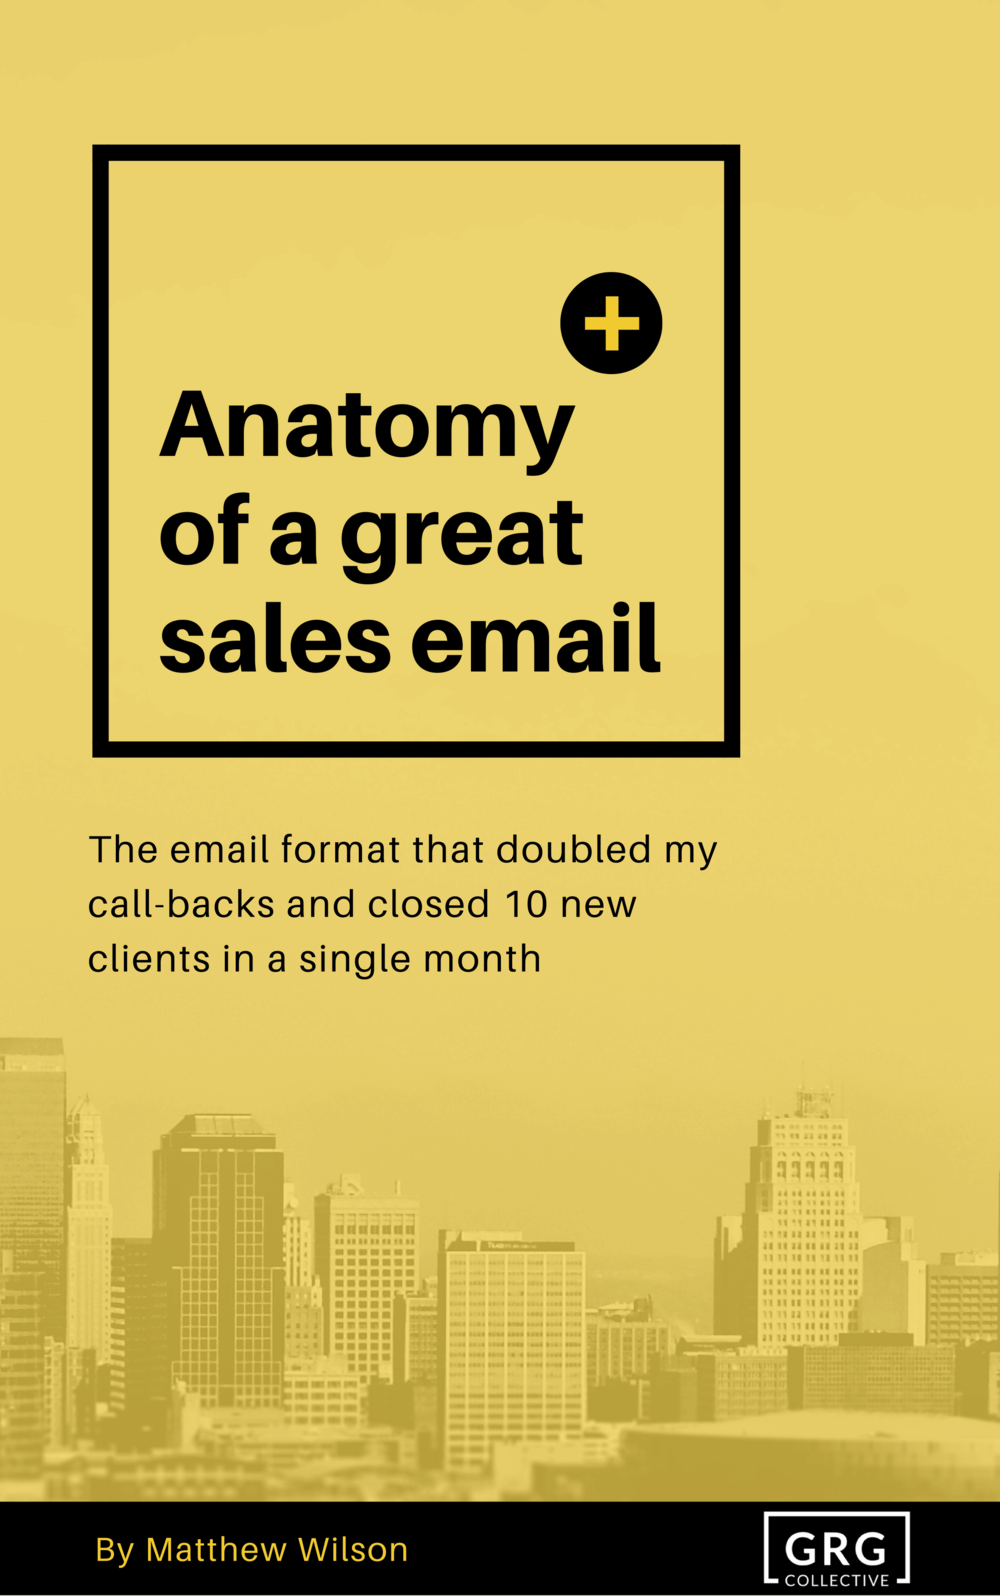 Anatomy-sales-email.png